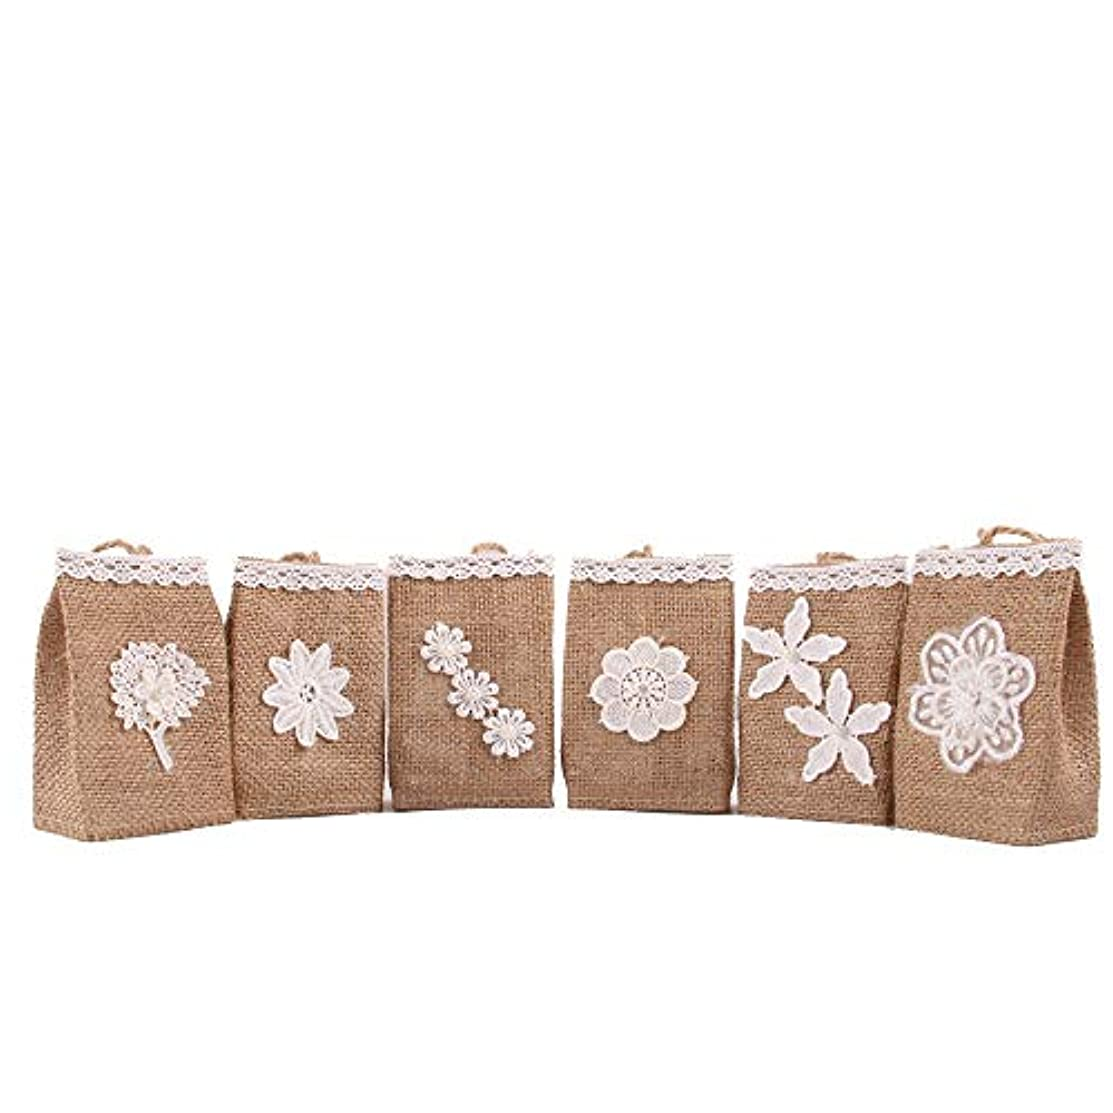 Junxia Natural Burlap Gift Bags for Wedding Party Decoration 6 Packs(Multi-Flowers)